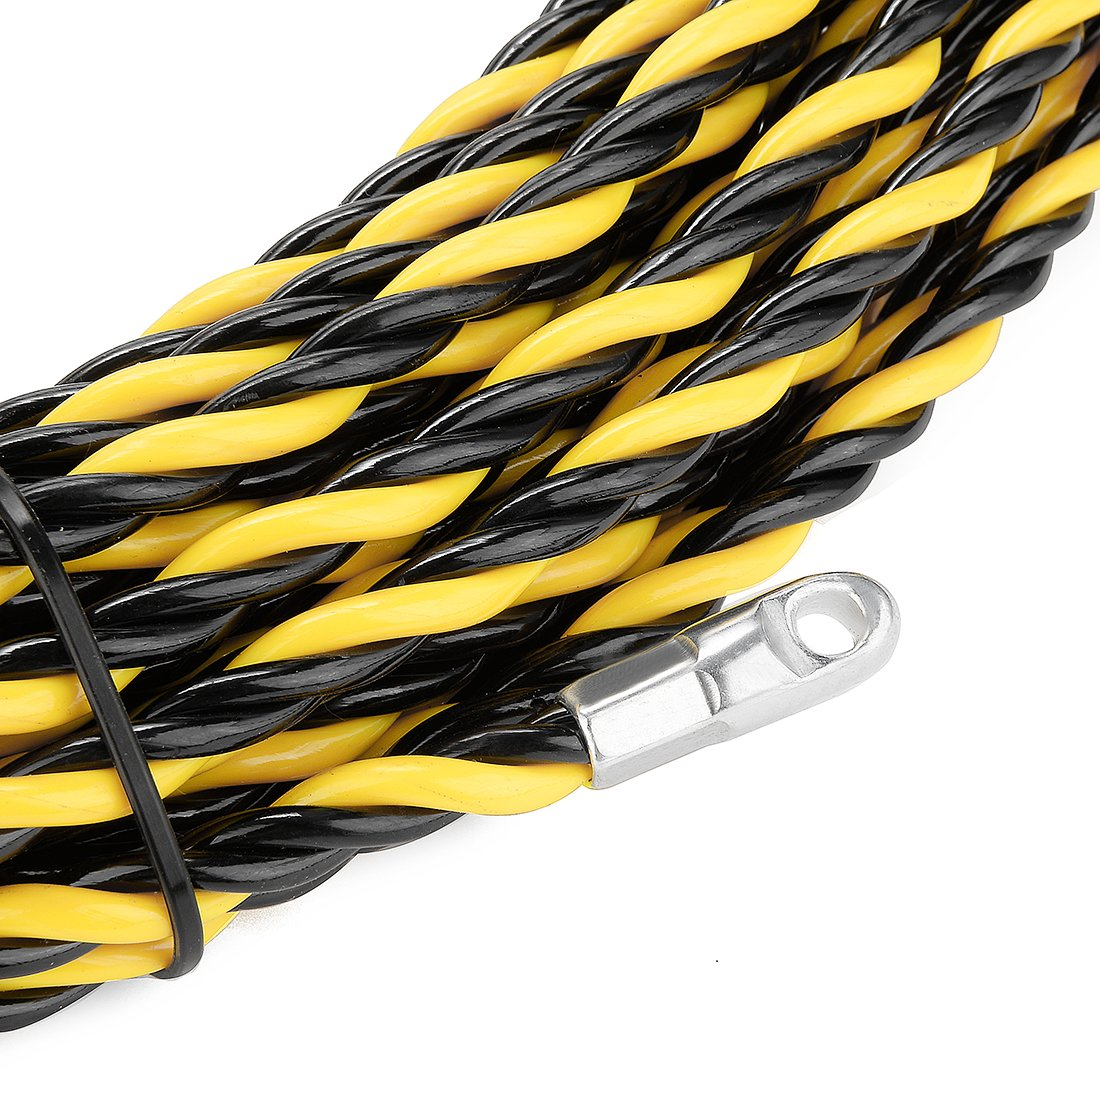 Uxcell Electrical Fish Tape Reel Pull Communication Wire Cable Line Conduit Wiring From Drywall Ceiling Under Rug